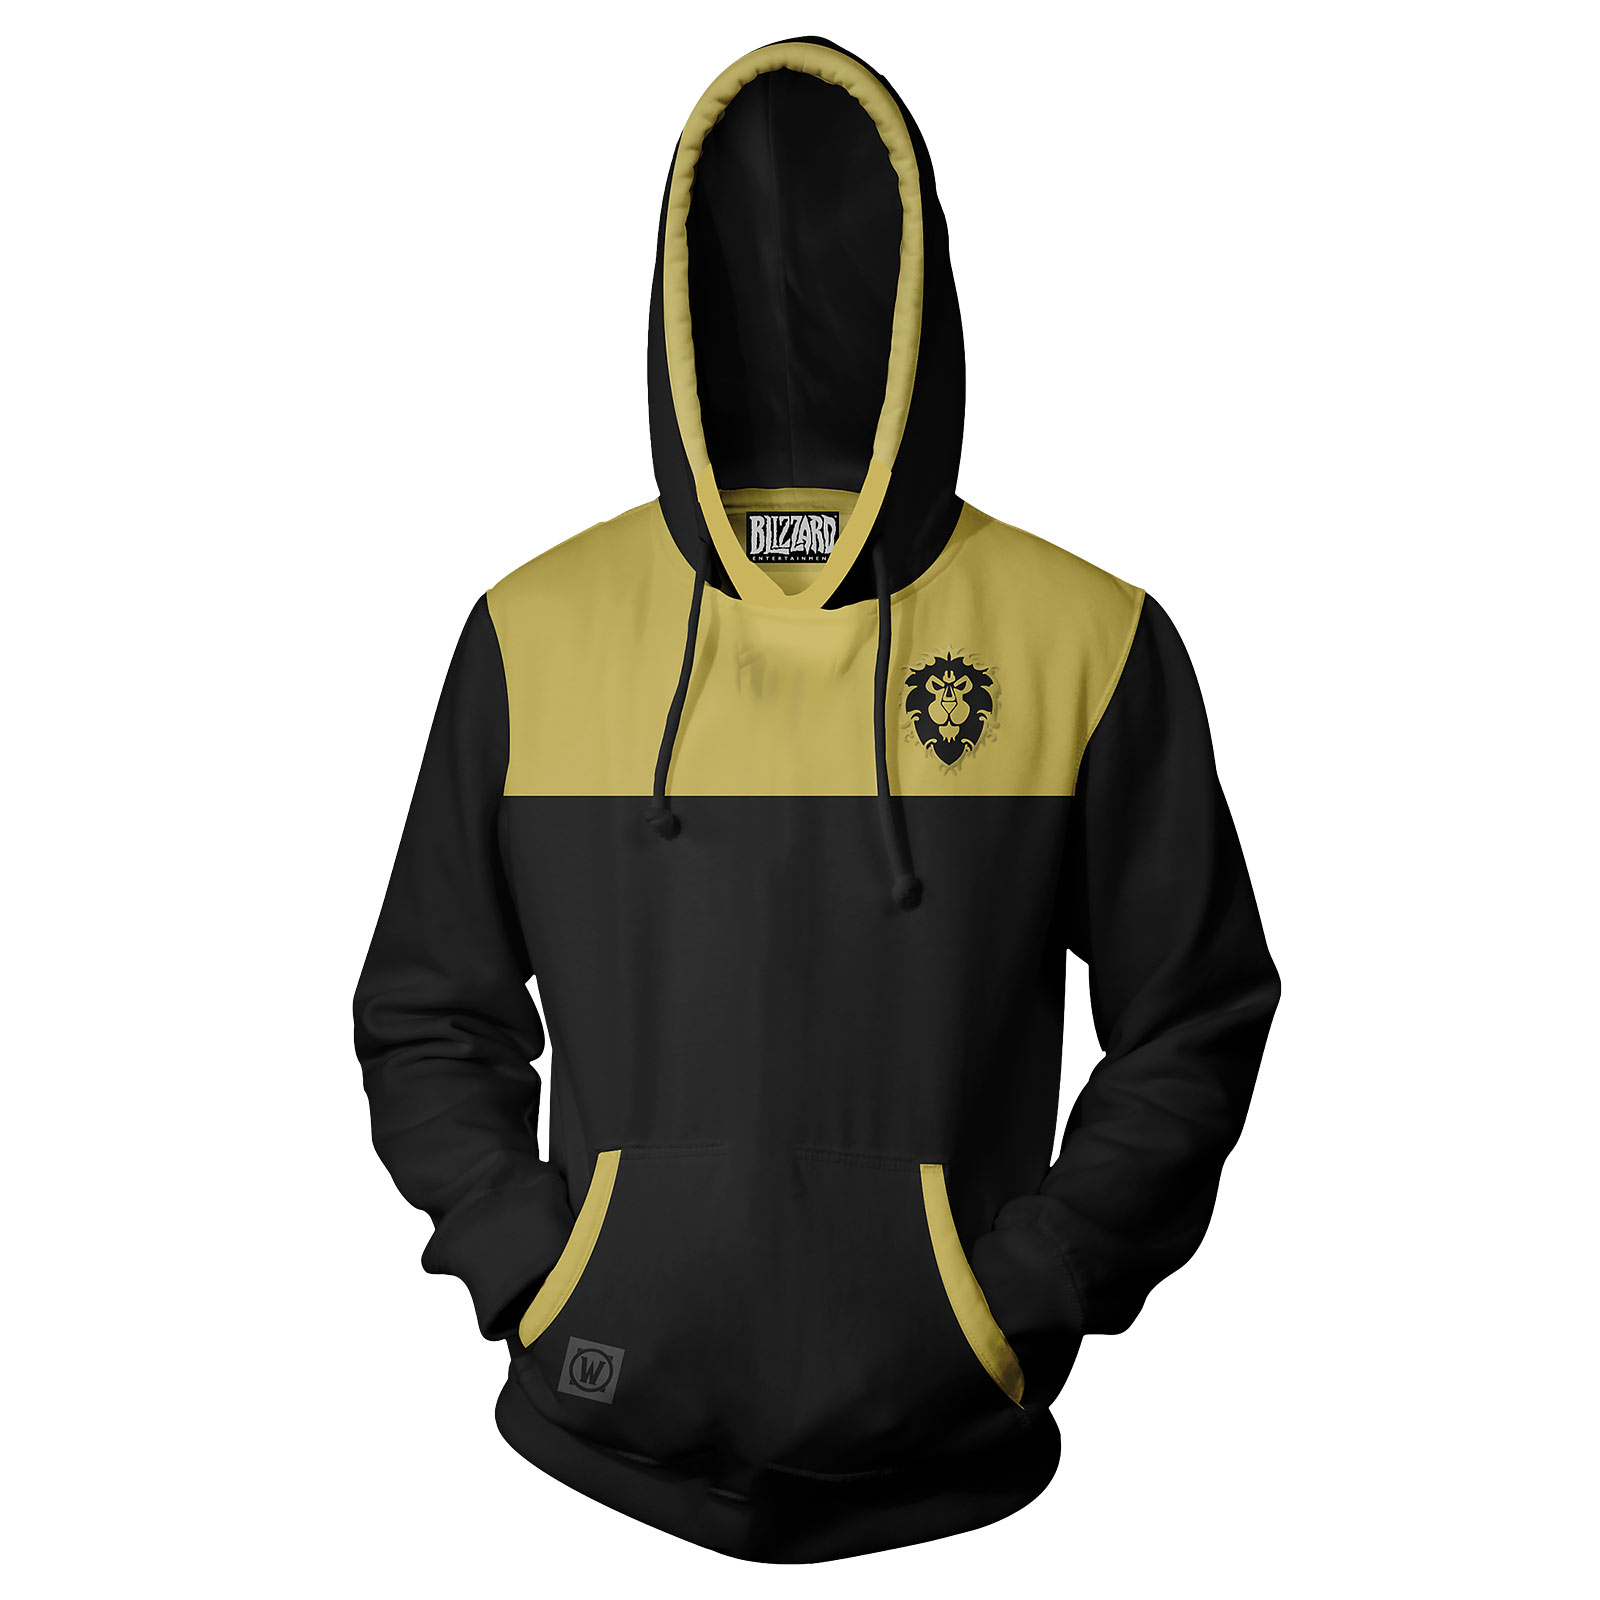 World of Warcraft - Alliance to the End Hoodie